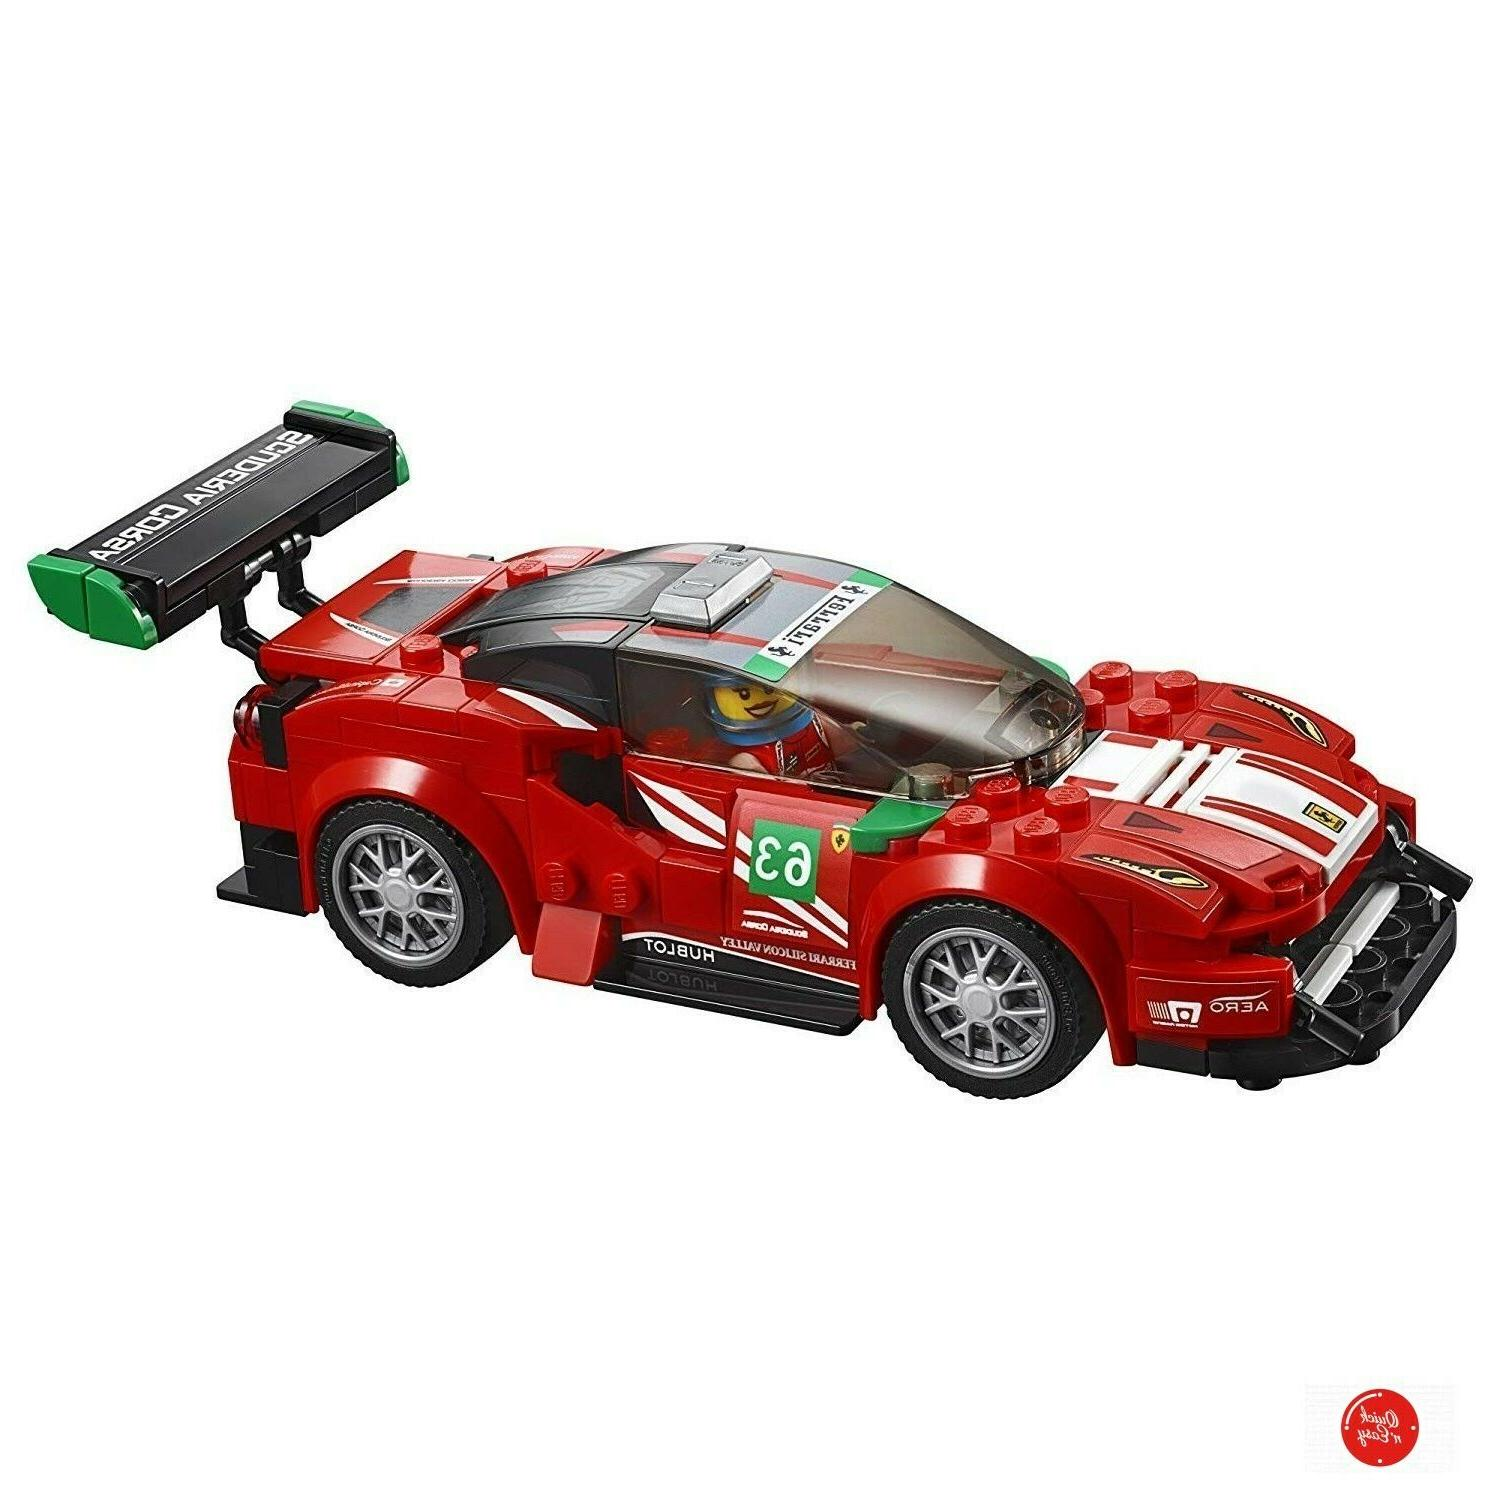 7 Gifts Toys 8-11 Best Car For Kids